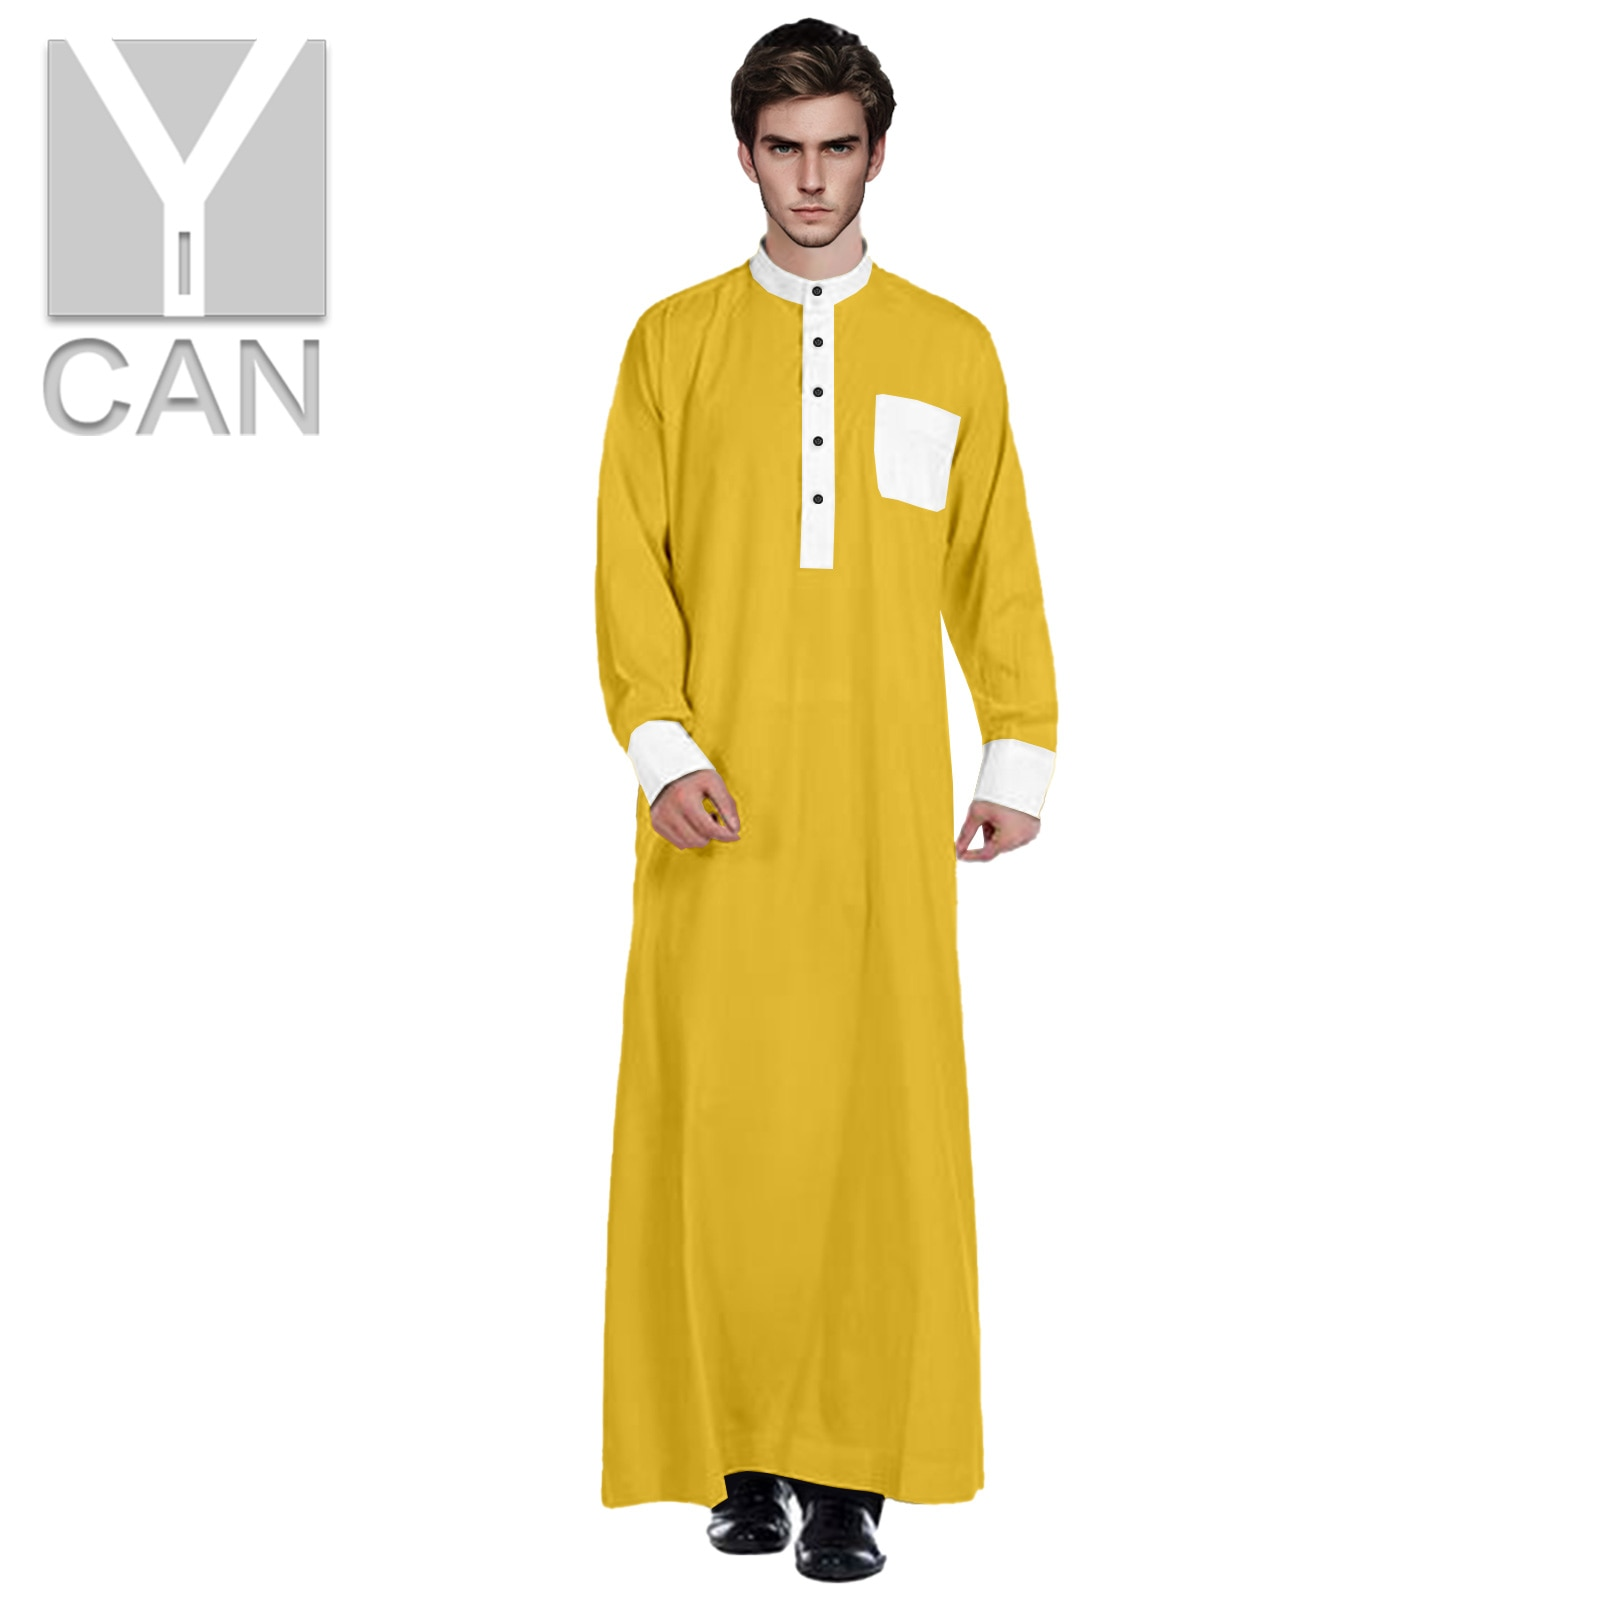 Y-CAN Pakistan Free Muslim Fashion for Men Jubba Thobe With Stand Up Collar Contrast Islamic Arabic Clothing Muslim Robe Y211003